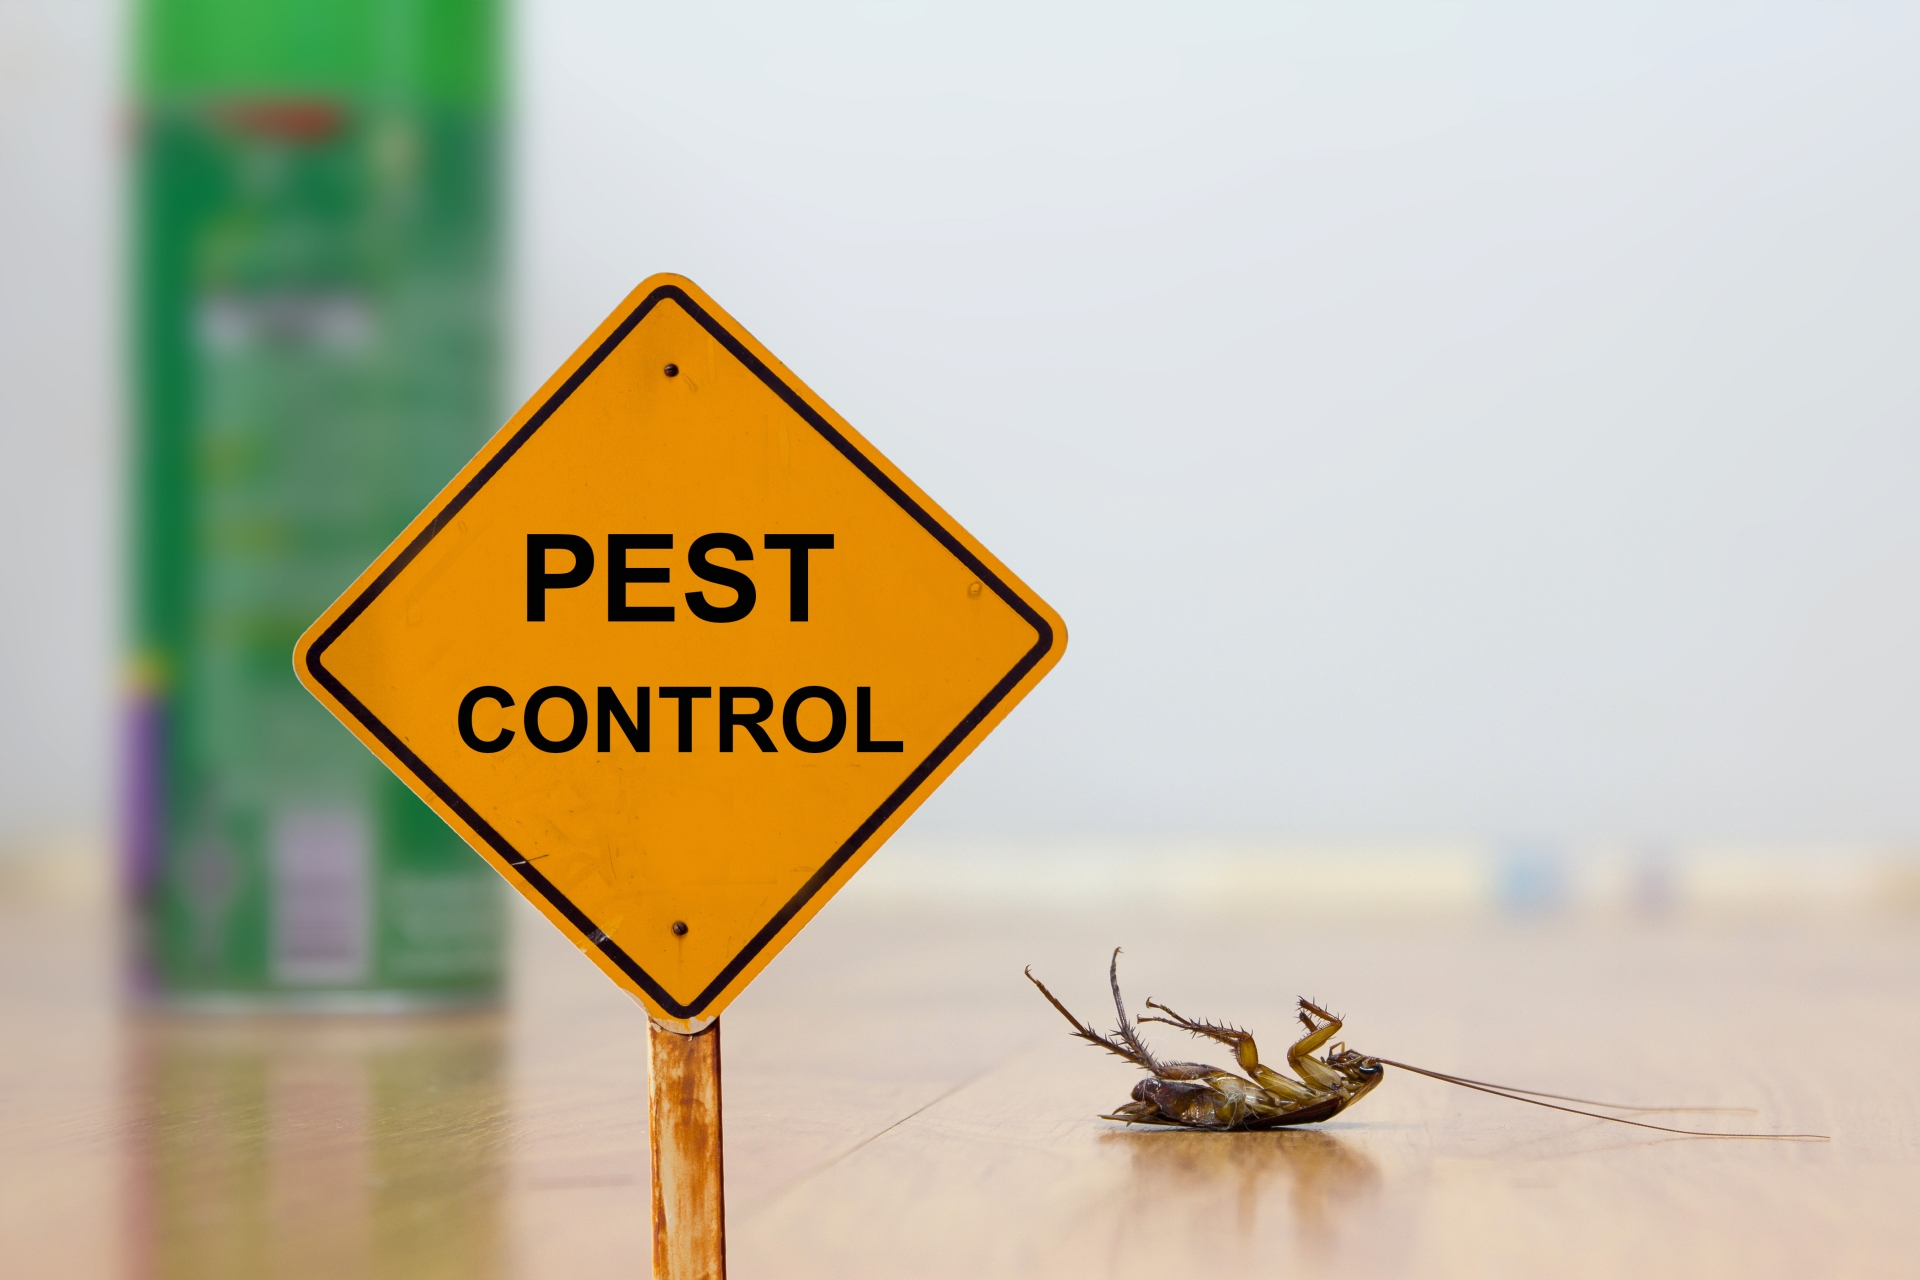 24 Hour Pest Control, Pest Control in Brent Cross, Hendon, NW4. Call Now 020 8166 9746